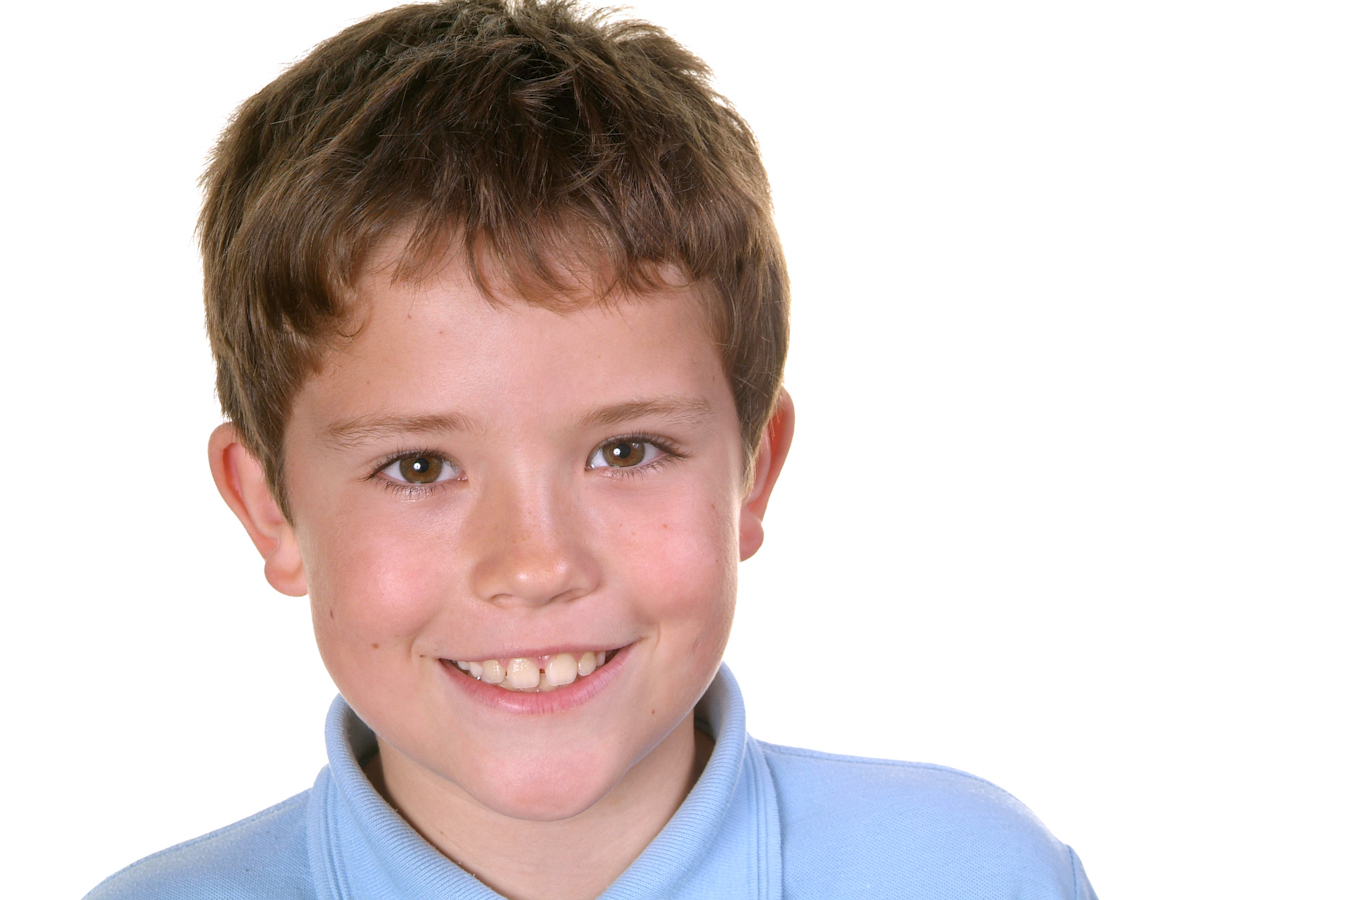 Young boy smiling in contemporary Vancols photo shoot